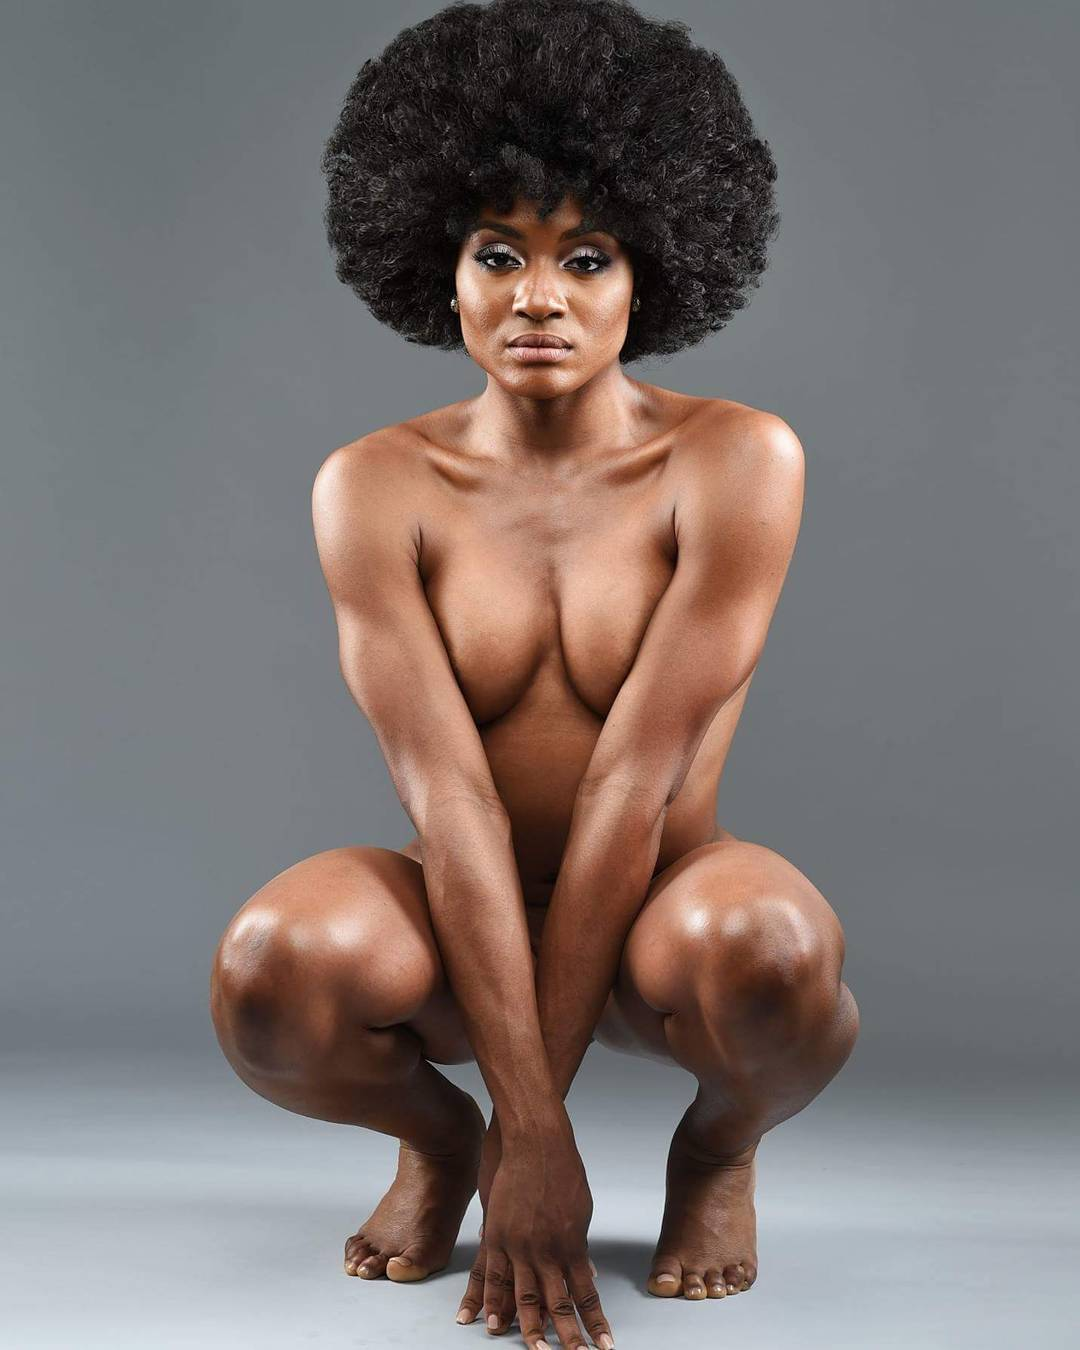 thelawofphotog2: THE LAW OF PHOTOGRAPHY PHOTOGRAPHER: Michael M Law MODEL: Valerie Ita MAKEUP ARTIST: Latisha Jordan MANAGER: Shelia T Martin #brooklyn #ny #thelawofphotography #michaelthelawofphotography #nikon #photooftheday #picoftheday #photograph #myblackisbeautiful #myblackissexy #blackwomenrock #blackwomenarebeautiful #afro #blackart #blackwomenaresexy #blackwomenare #teamafro #teamnatural #mypassion #mylove #photographyismylife #mydailygrind #myhustle #blackphotographers #haitianphotographer #dailyhustle #fitnessmodels #fitness #fit #fitnessmotivation #impliednude #impliednudity #goddess Valerie Ita